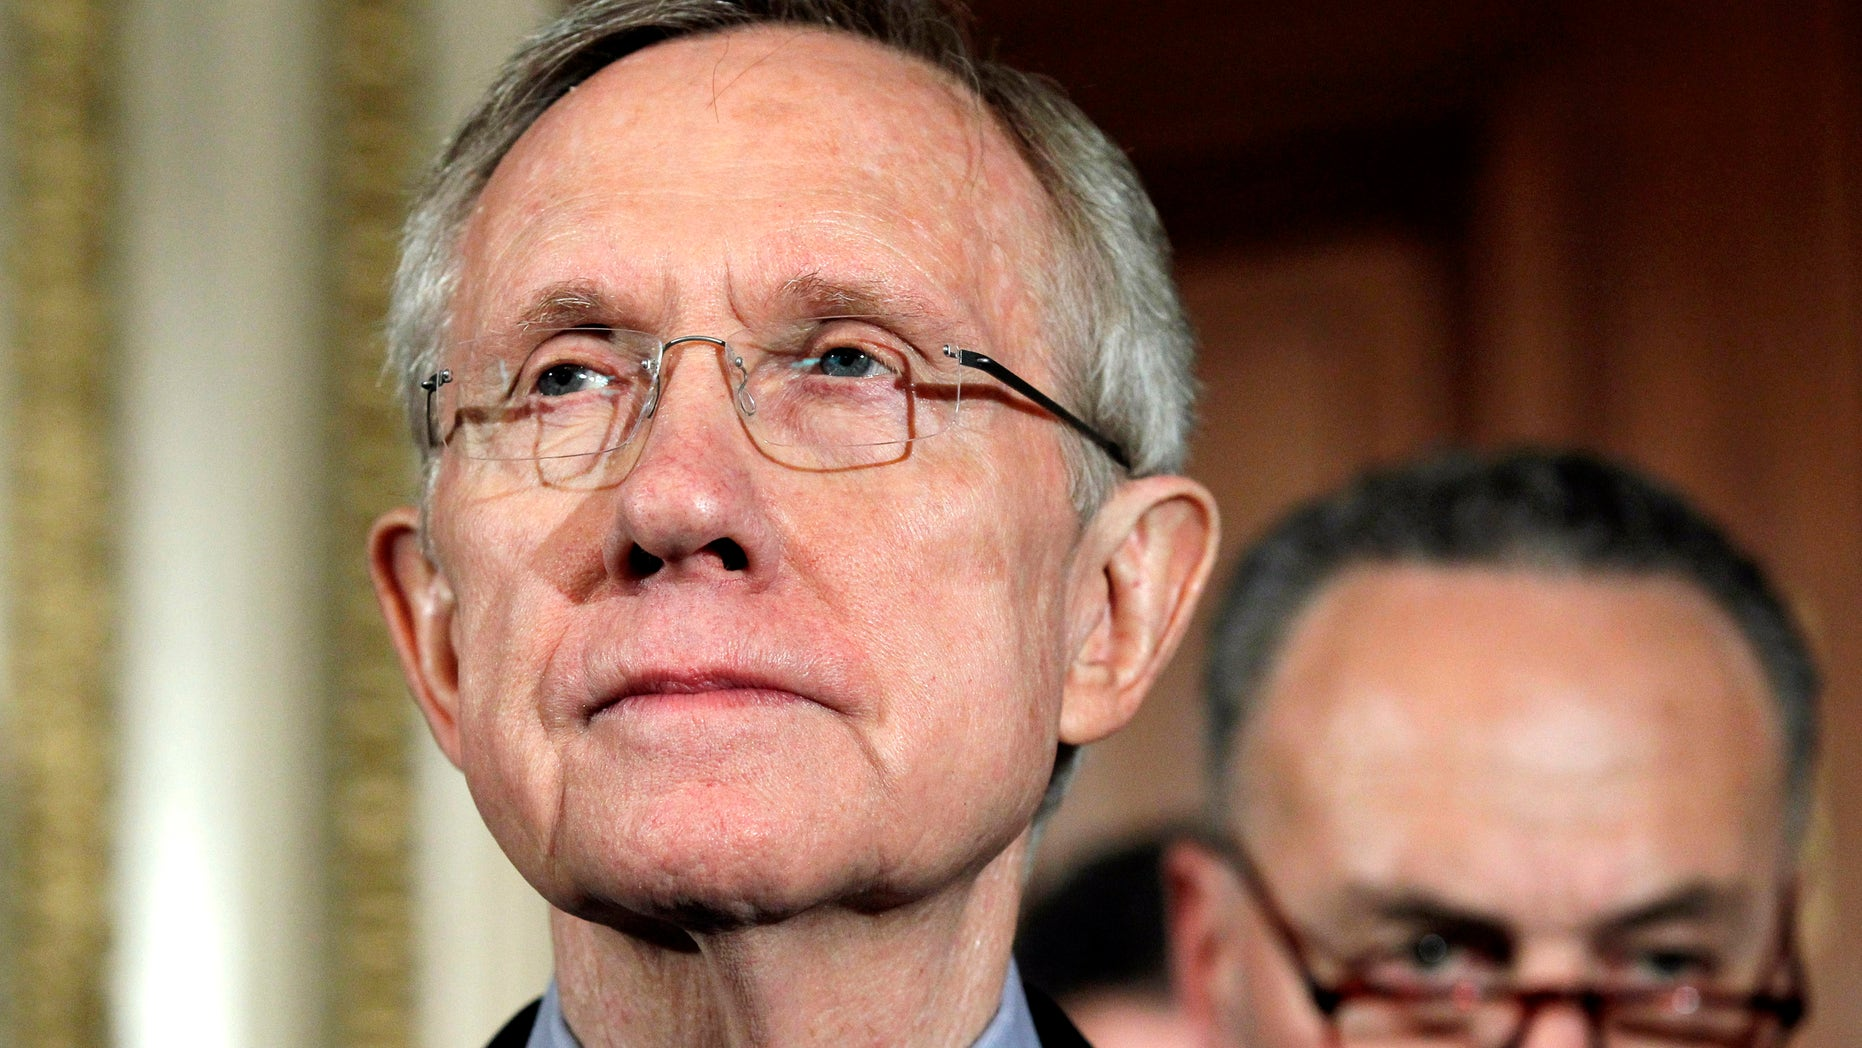 Senate Majority Leader Harry Reid of Nev., left, pauses during a news conference on Capitol Hill in Washington, Friday, April 8, 2011. (AP)